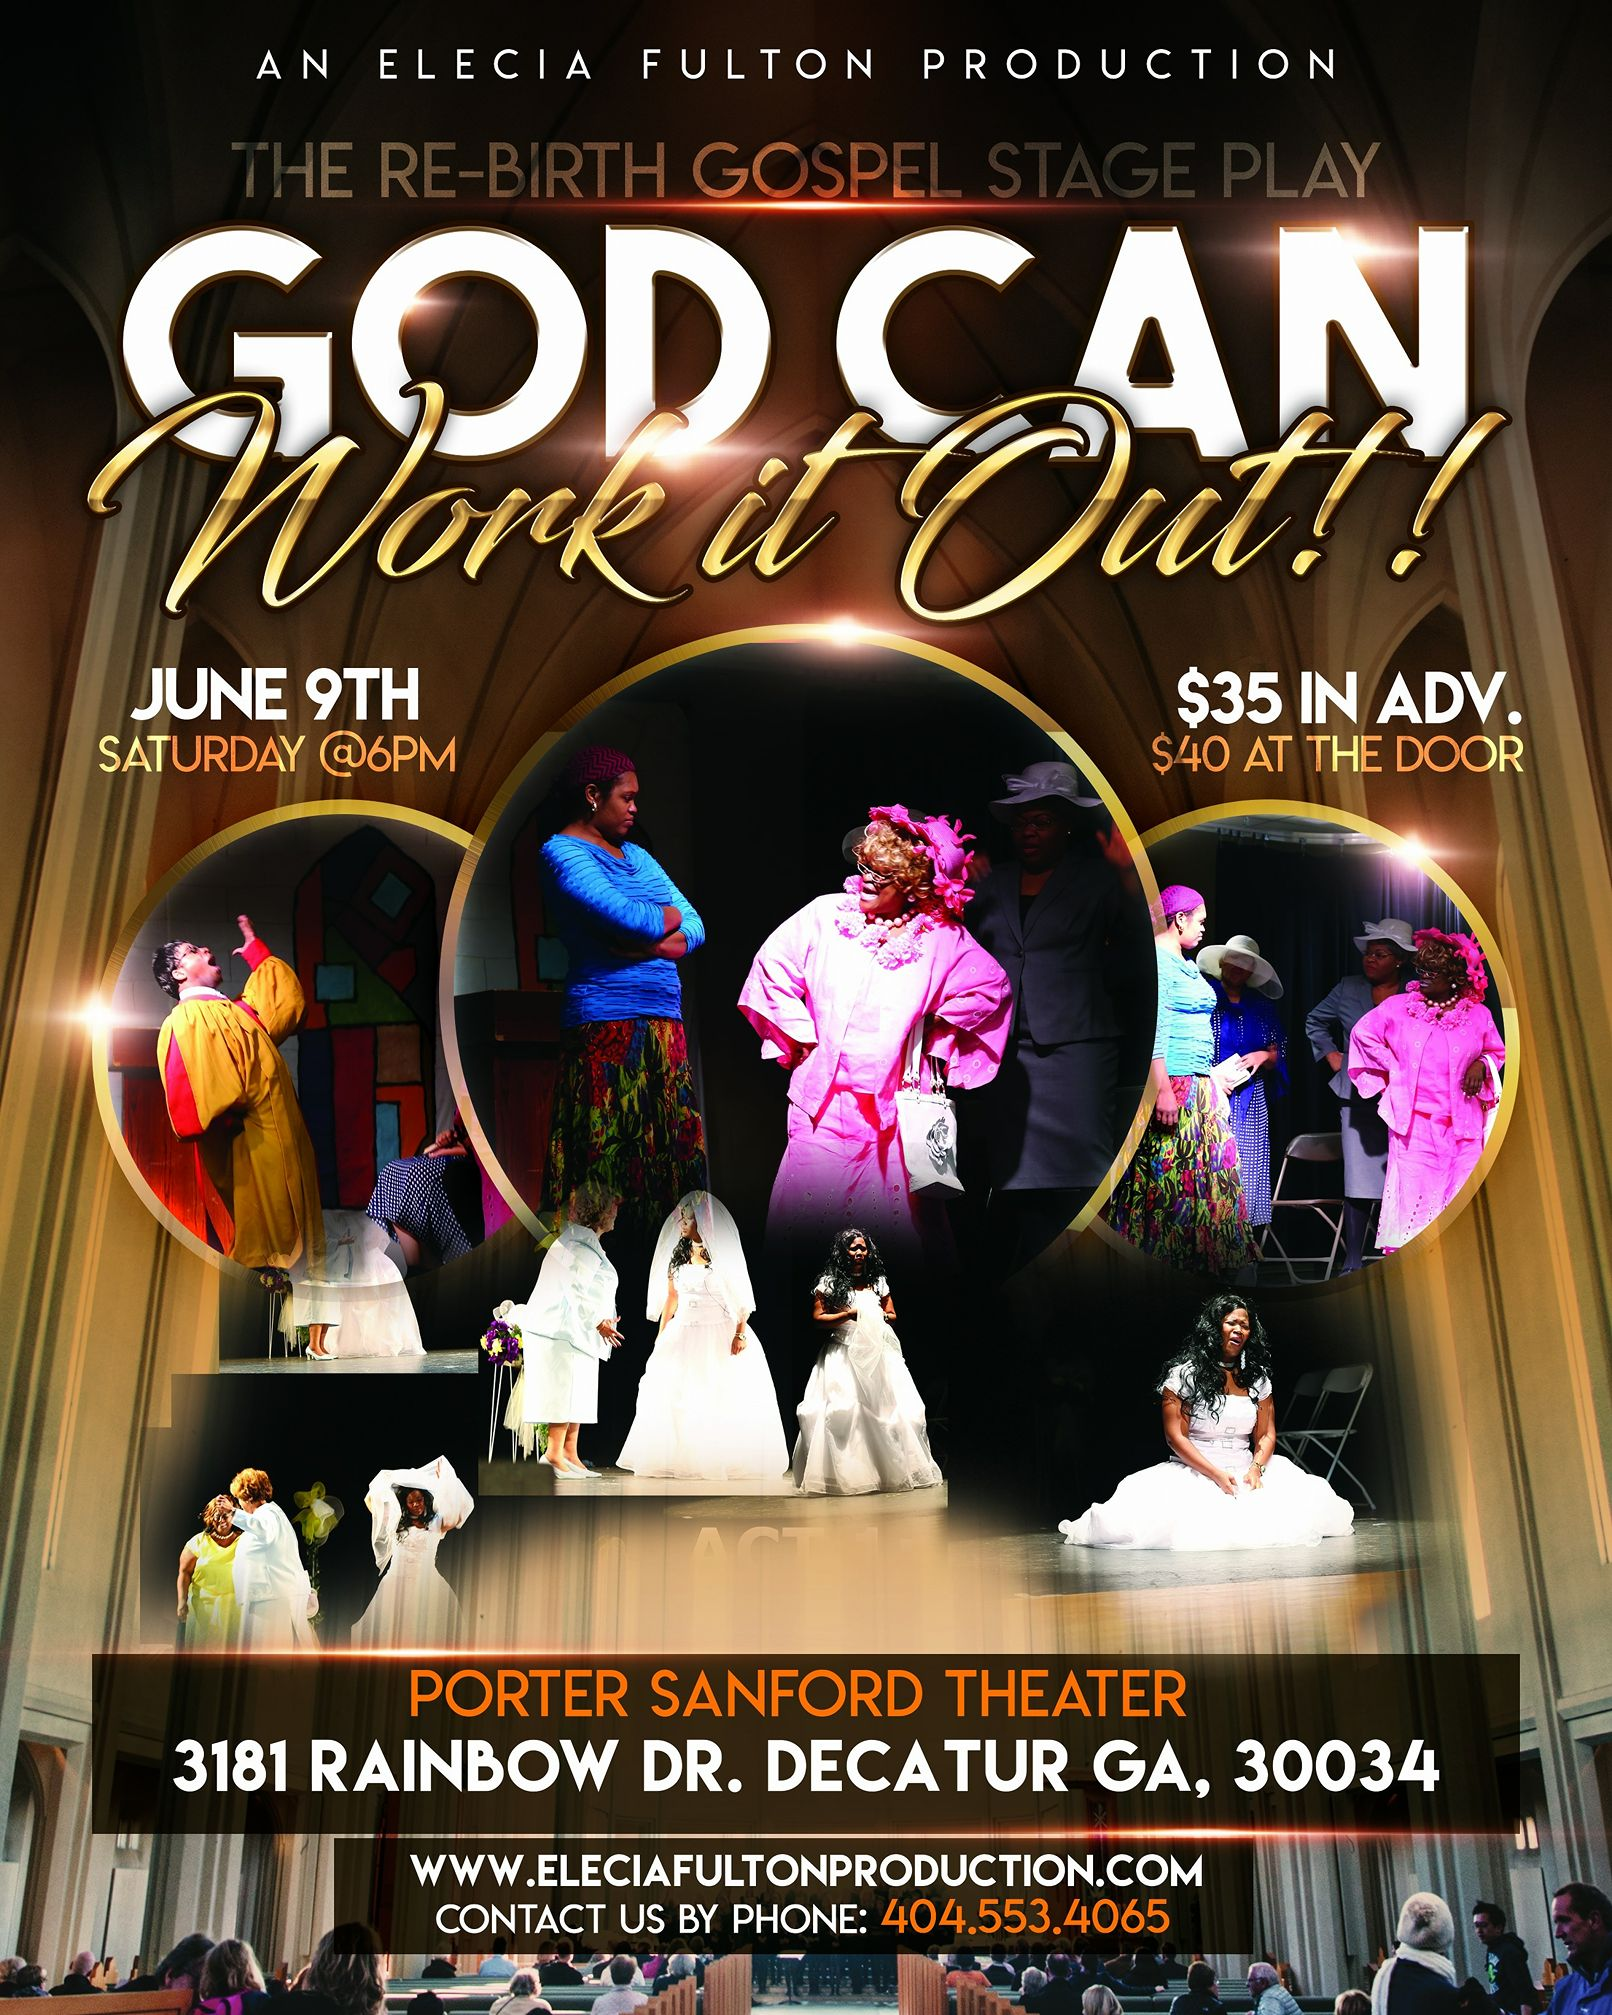 Re-Birth Gospel Stage Play